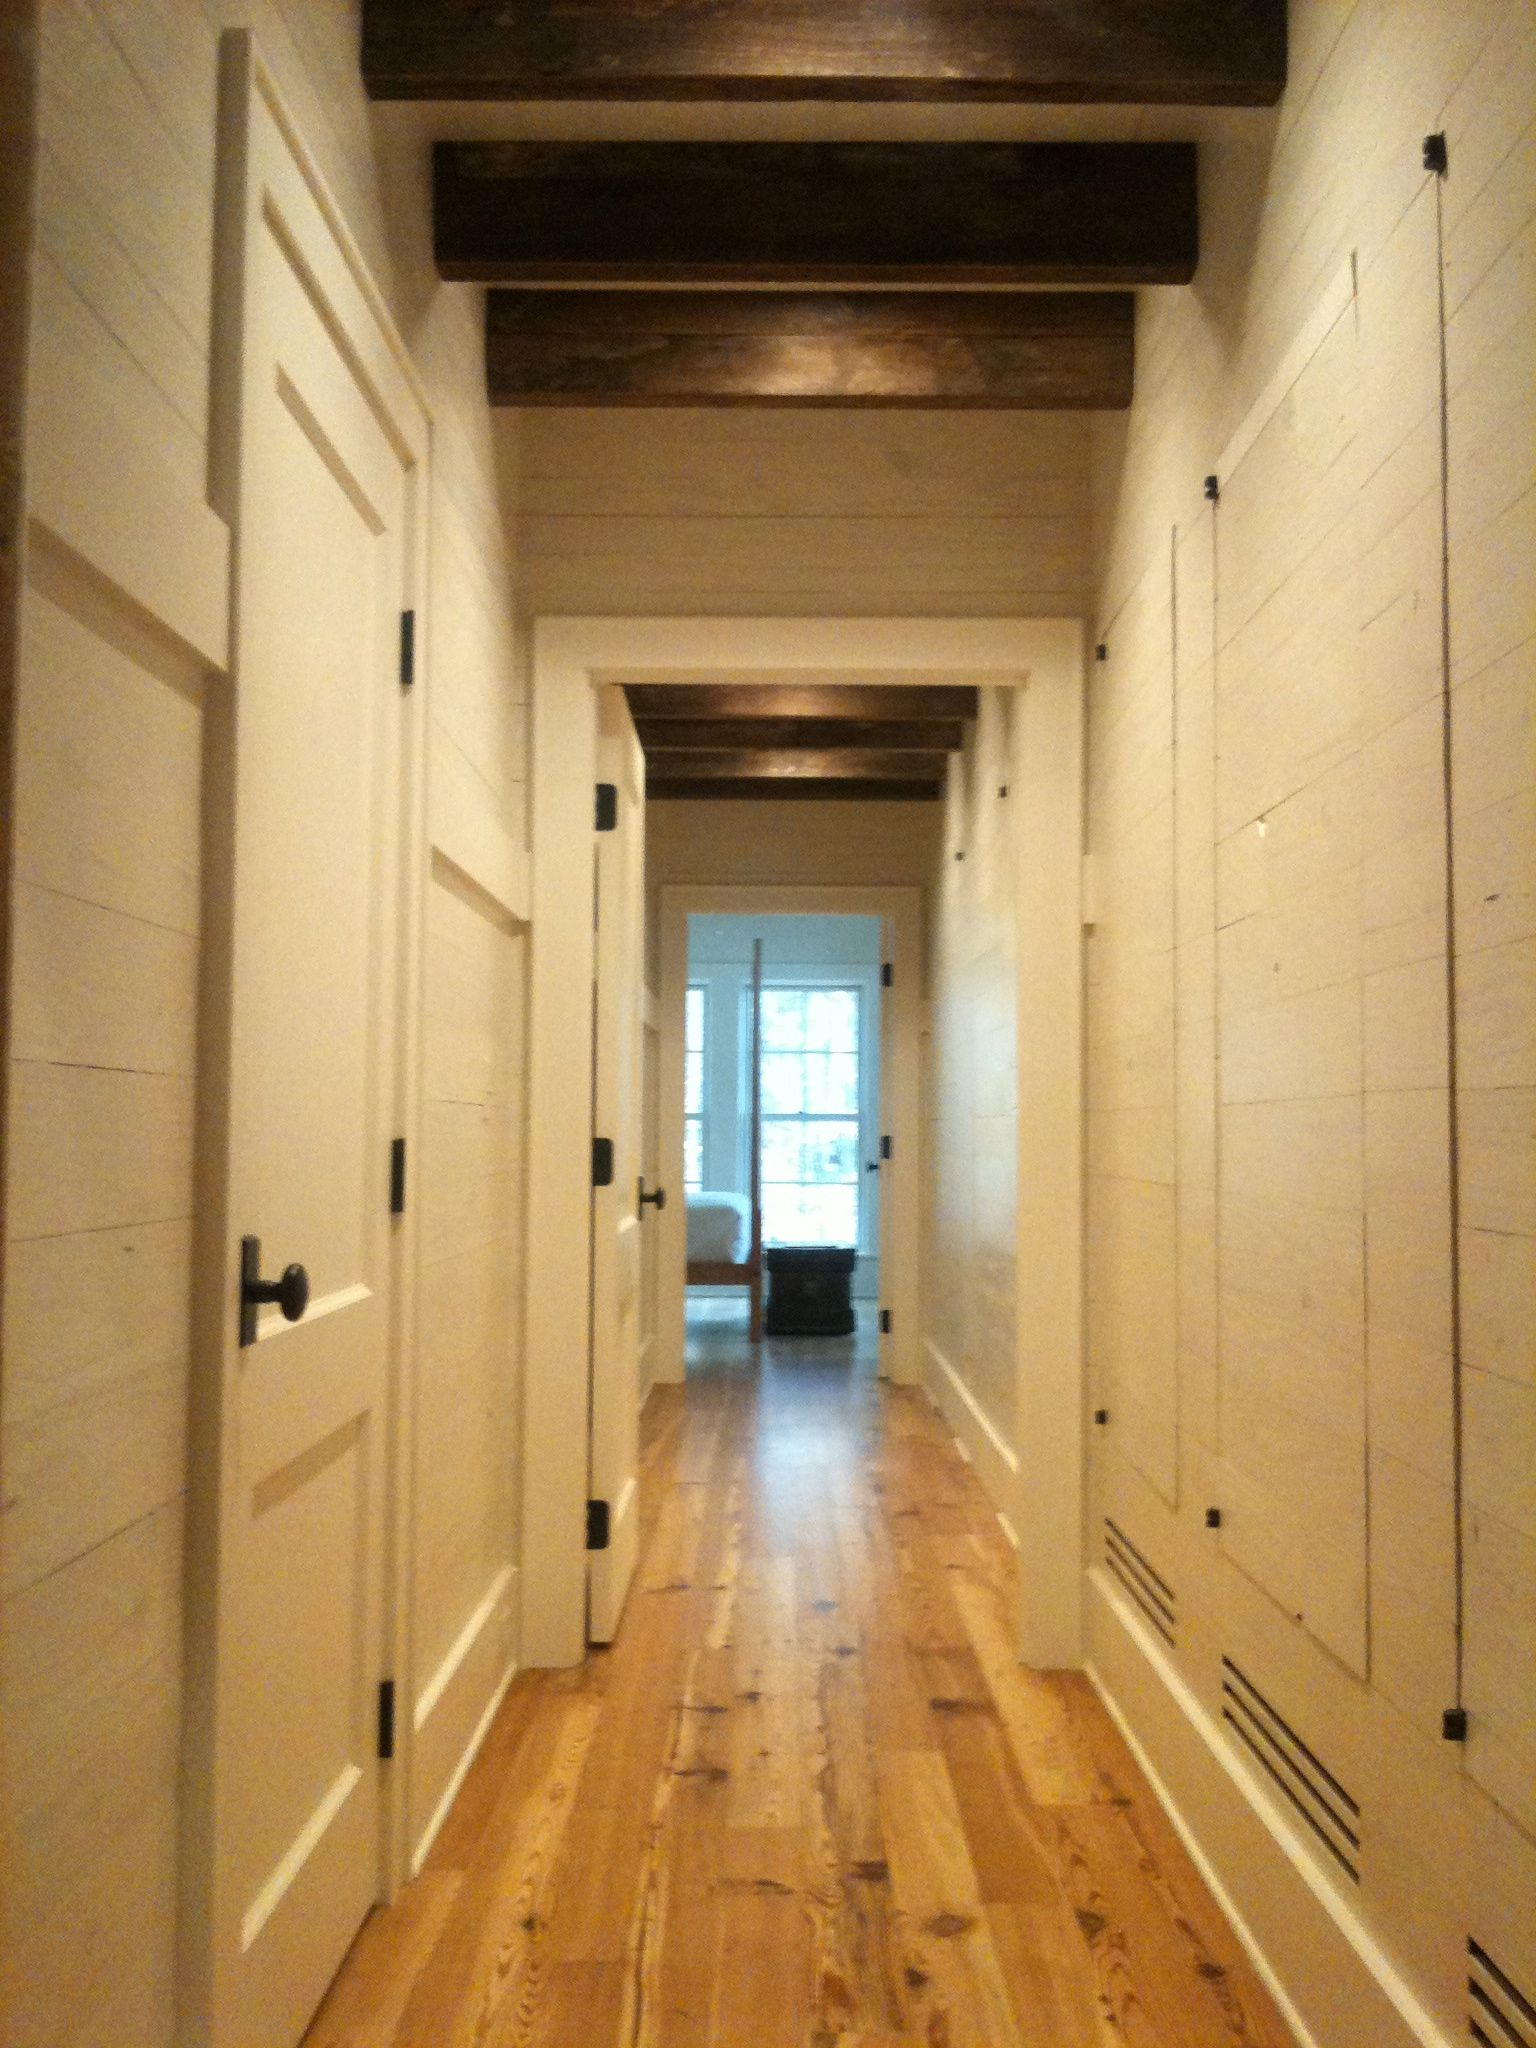 Closets and HVAC registers integrated into planked walls | Hidden ...